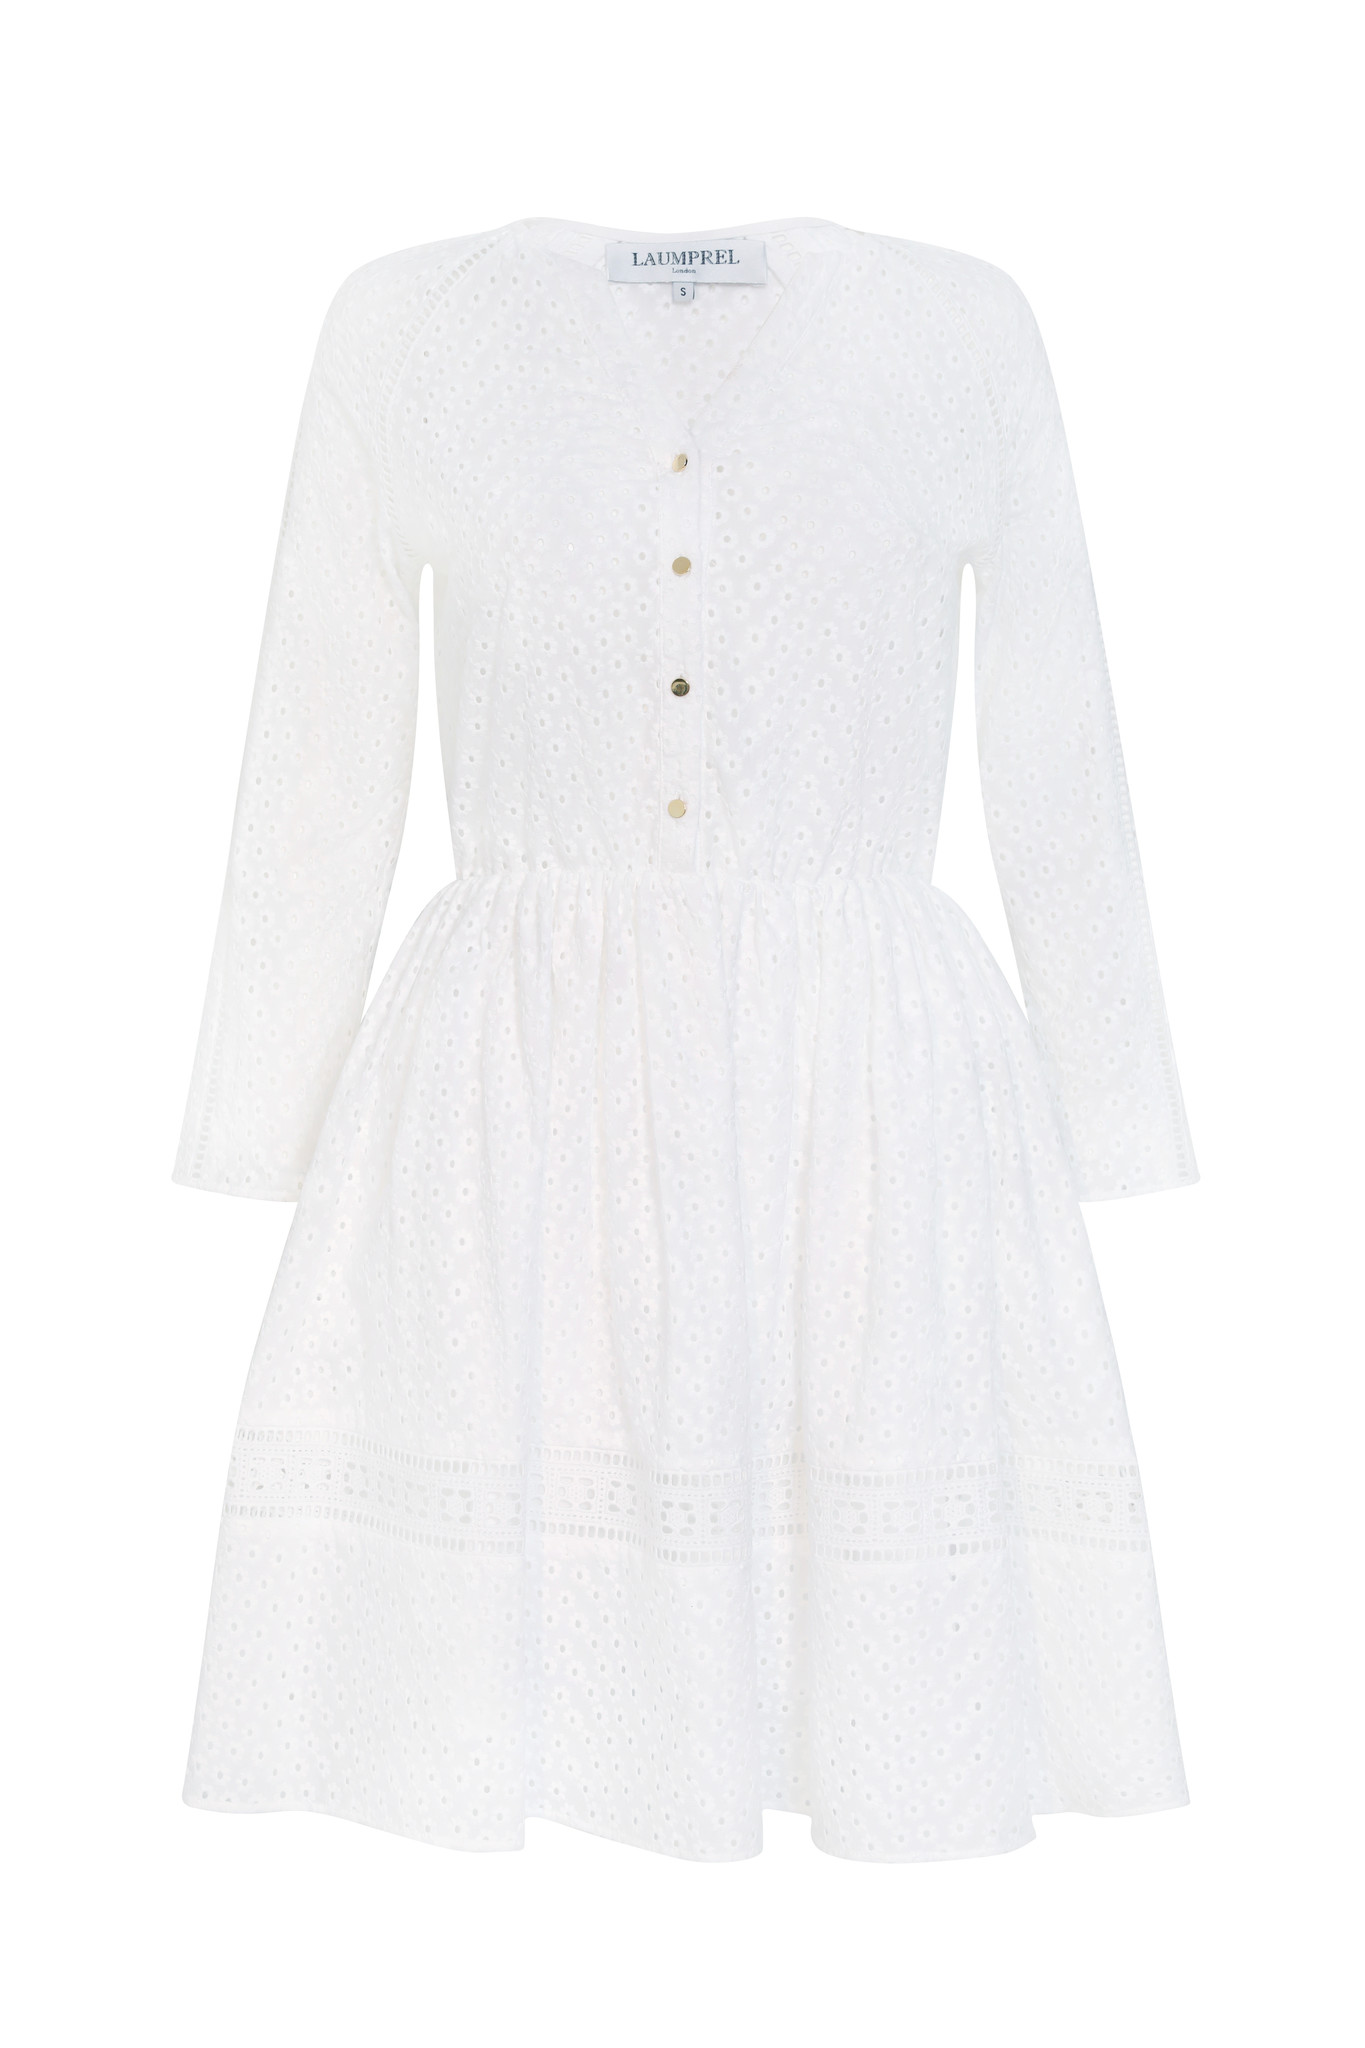 Carla broderie Anglaise cotton dress